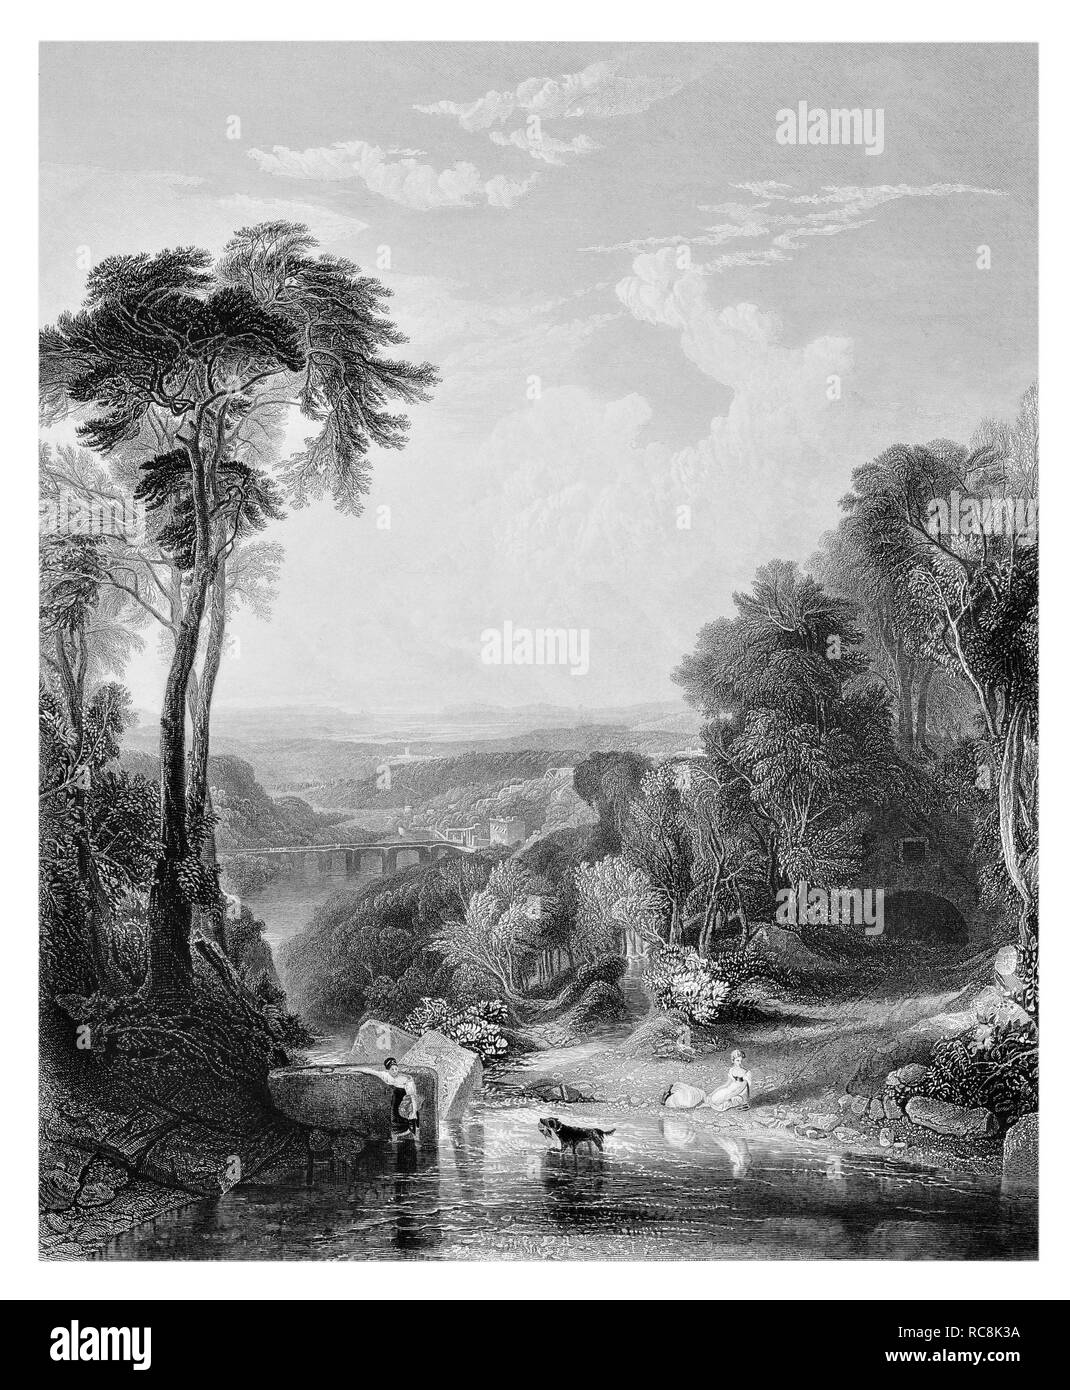 J.M.W Turner Crossing the brook engraved by W. Richardson - Stock Image